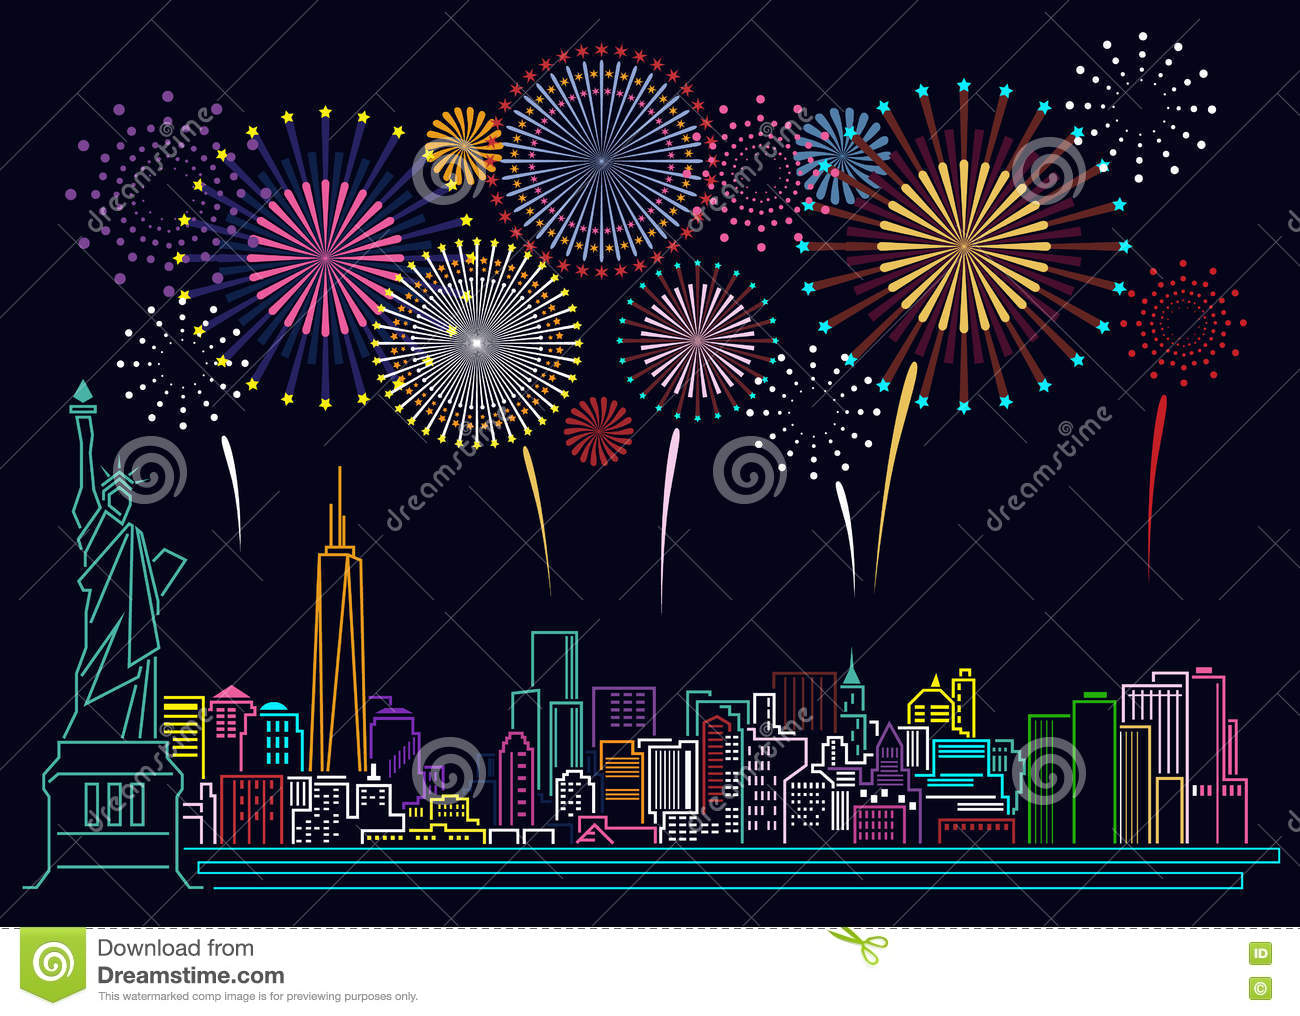 Cityscape Building Line Art And Firework Vector Design Stock ...